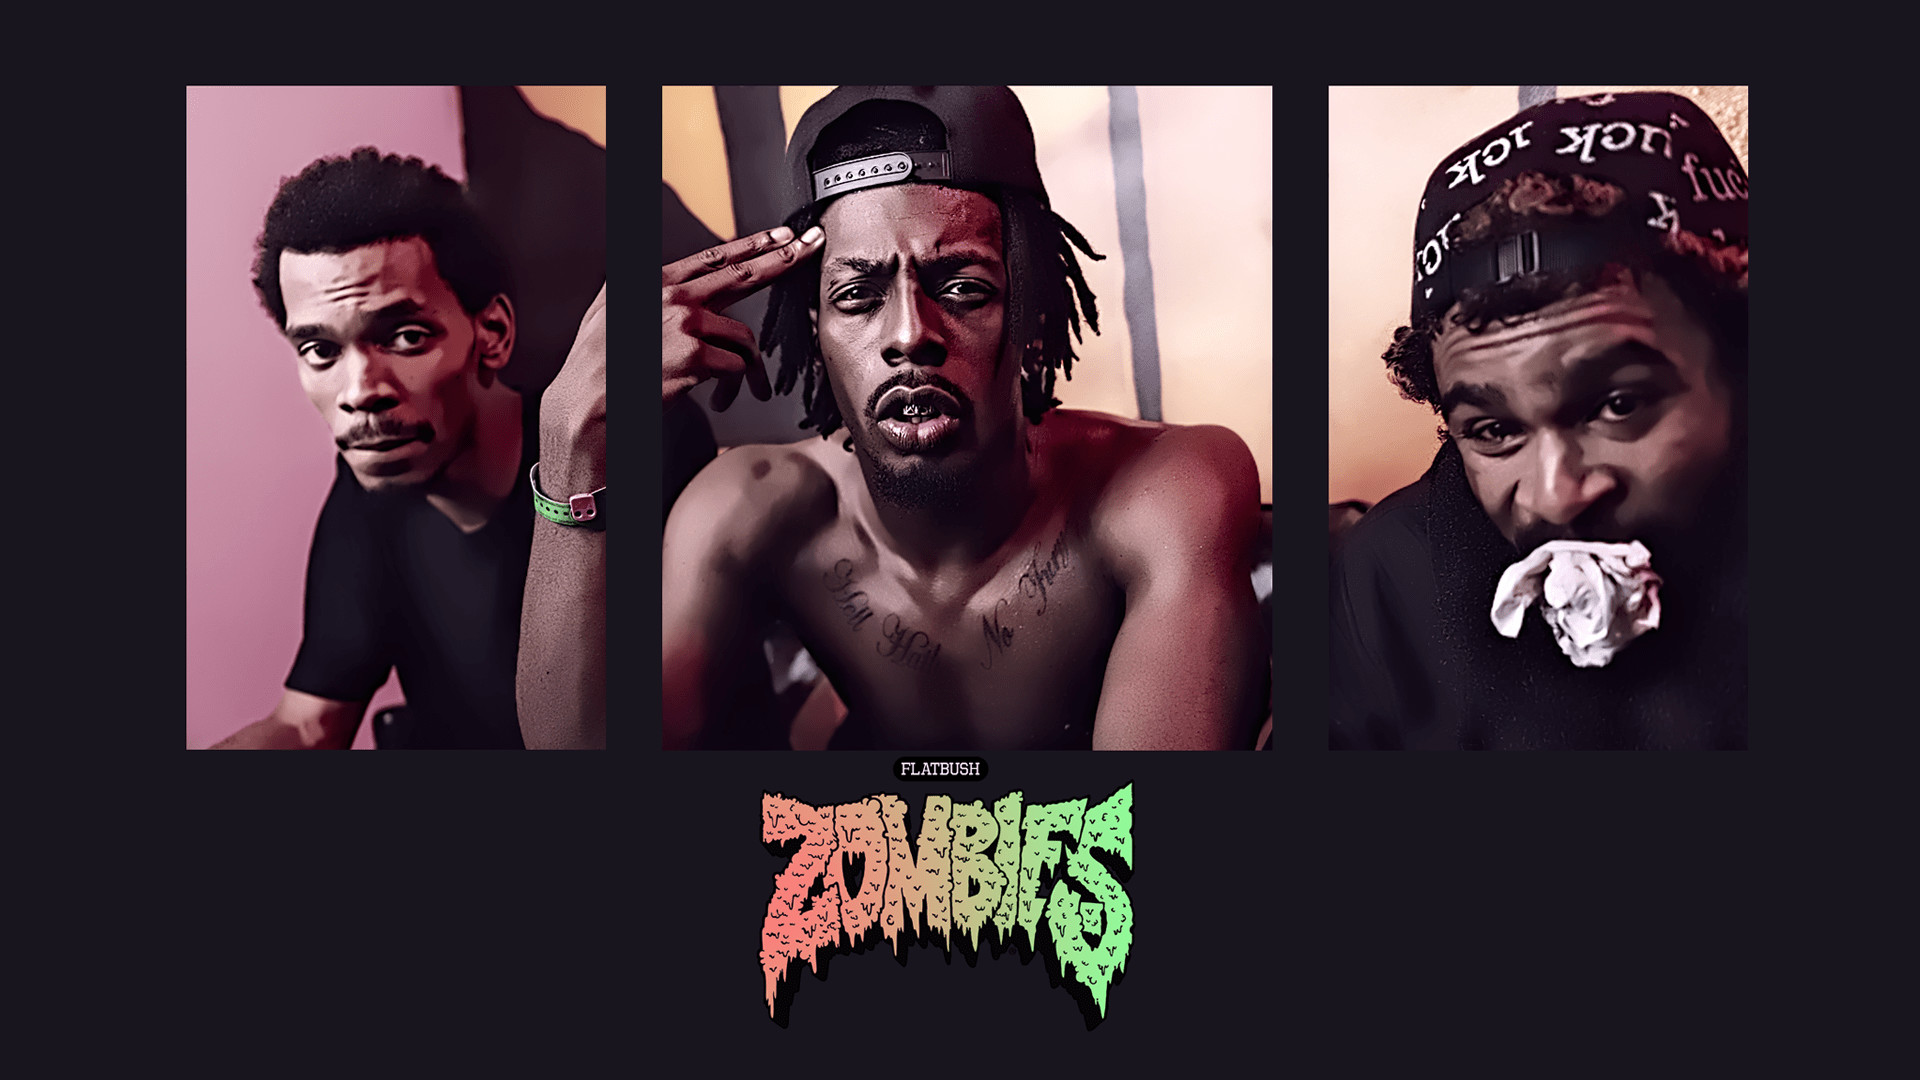 … Awesome GTYBcD.png Flatbush Zombies Wallpaper And Flatbush Zombies  IPhone Wallpaper WallpaperSafari Beautiful Nature Hd